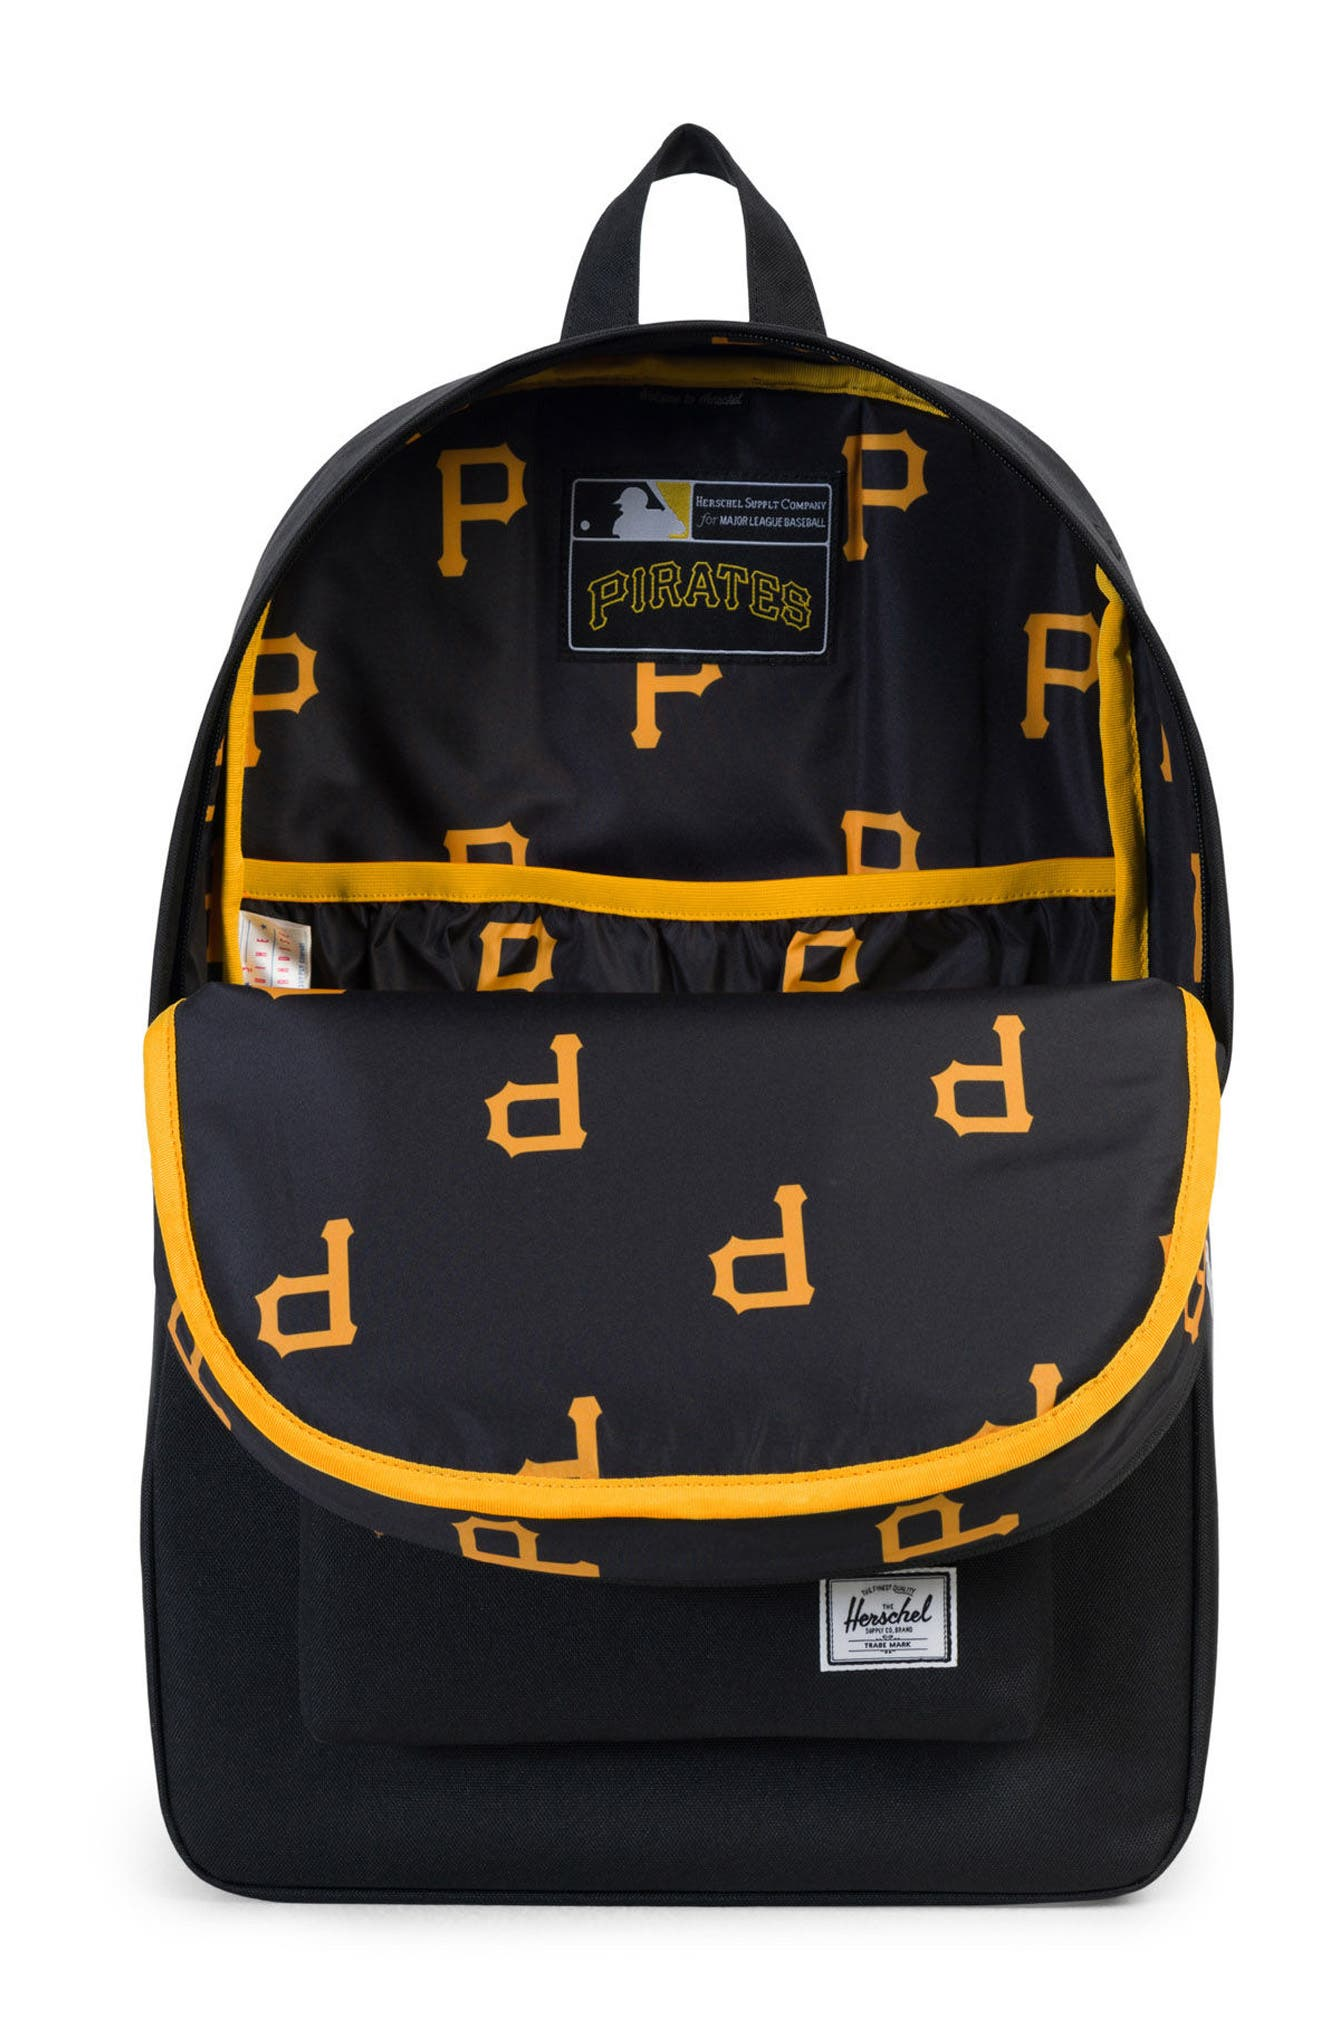 Heritage Pittsburgh Pirates Backpack,                             Alternate thumbnail 3, color,                             003